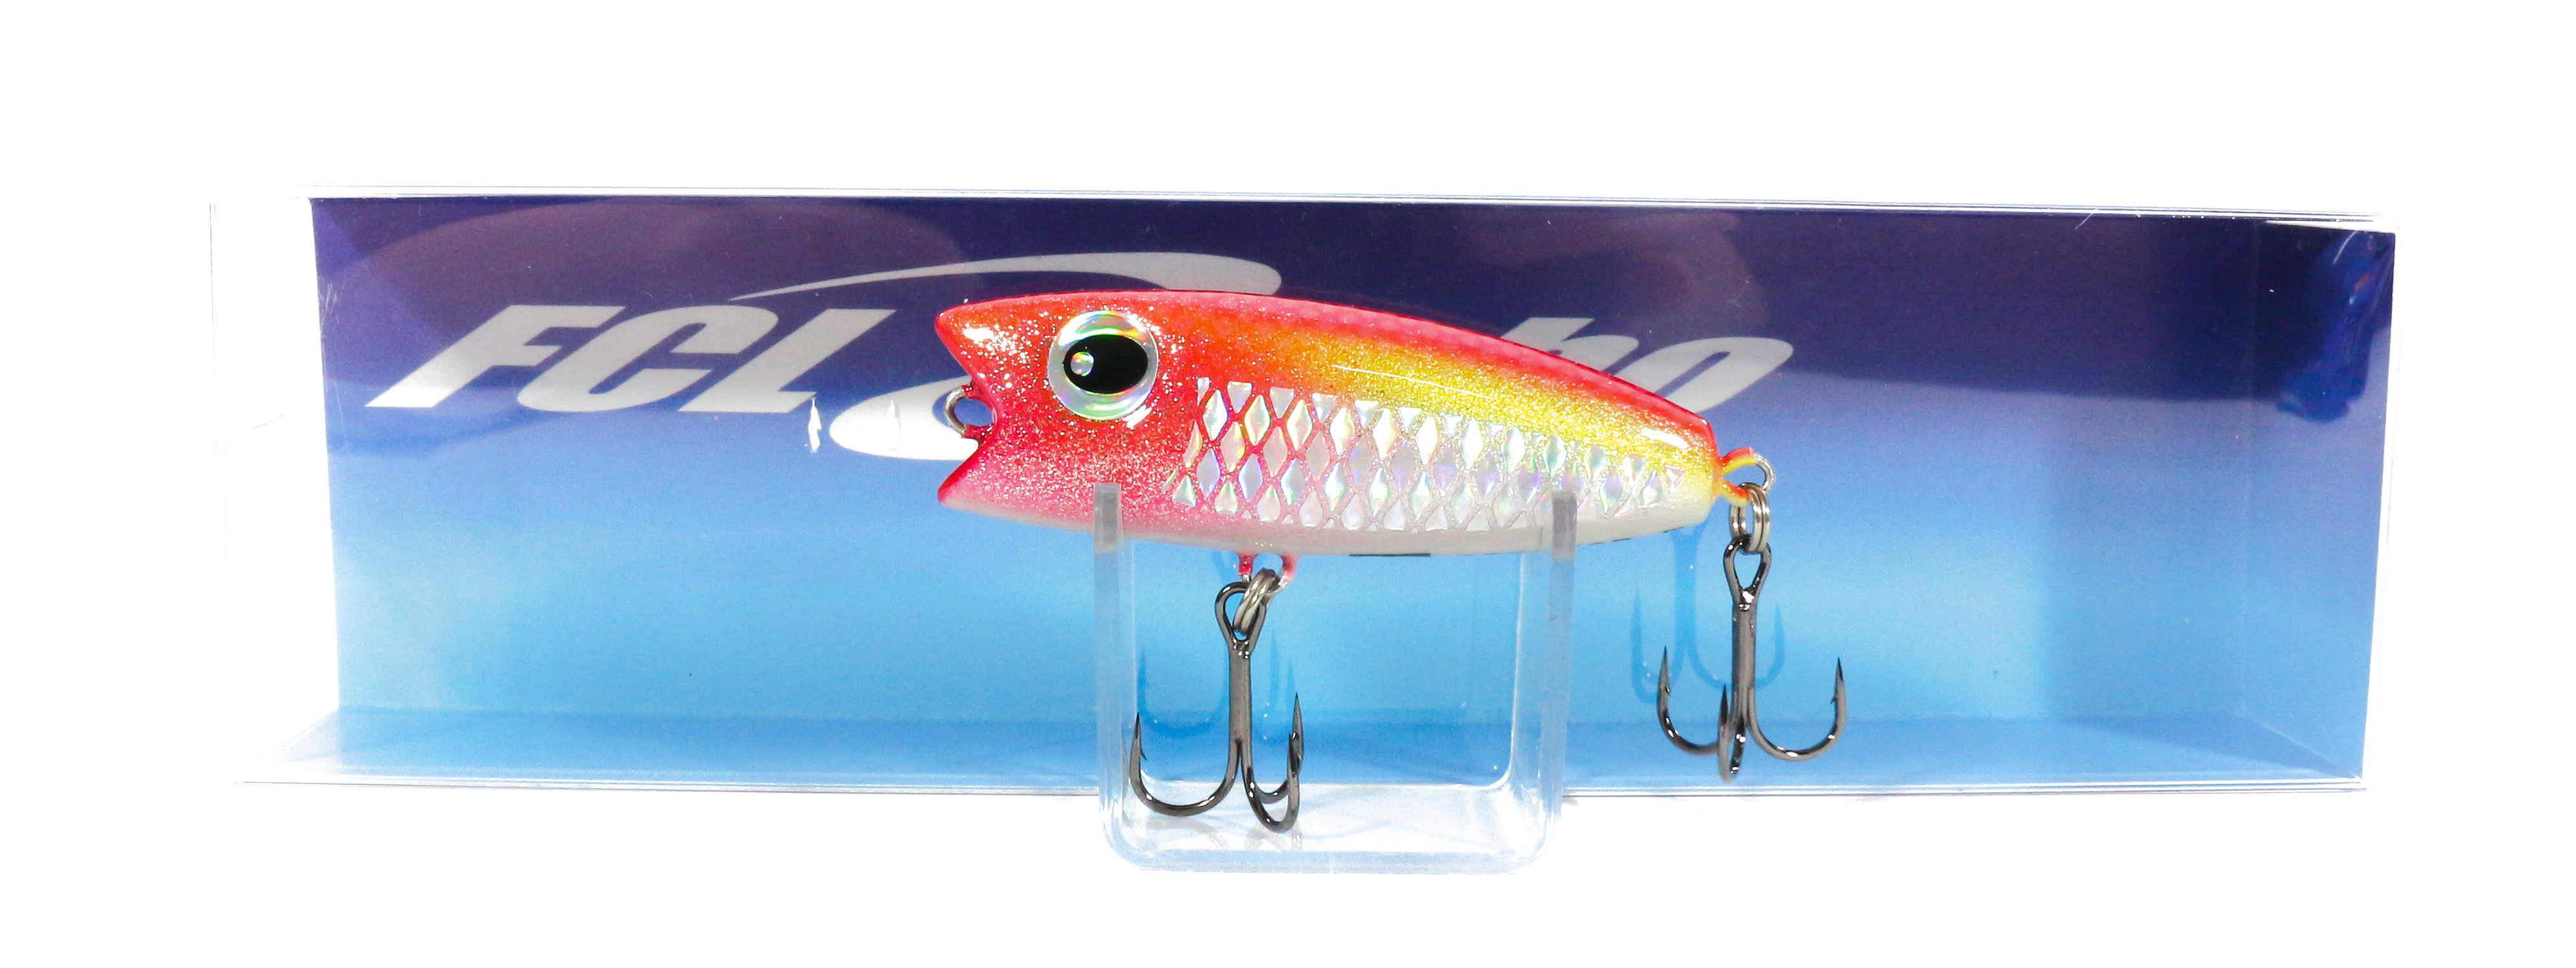 FCL Labo Stick Bait CSP 55 SPF Floating Lure YLP (2431)